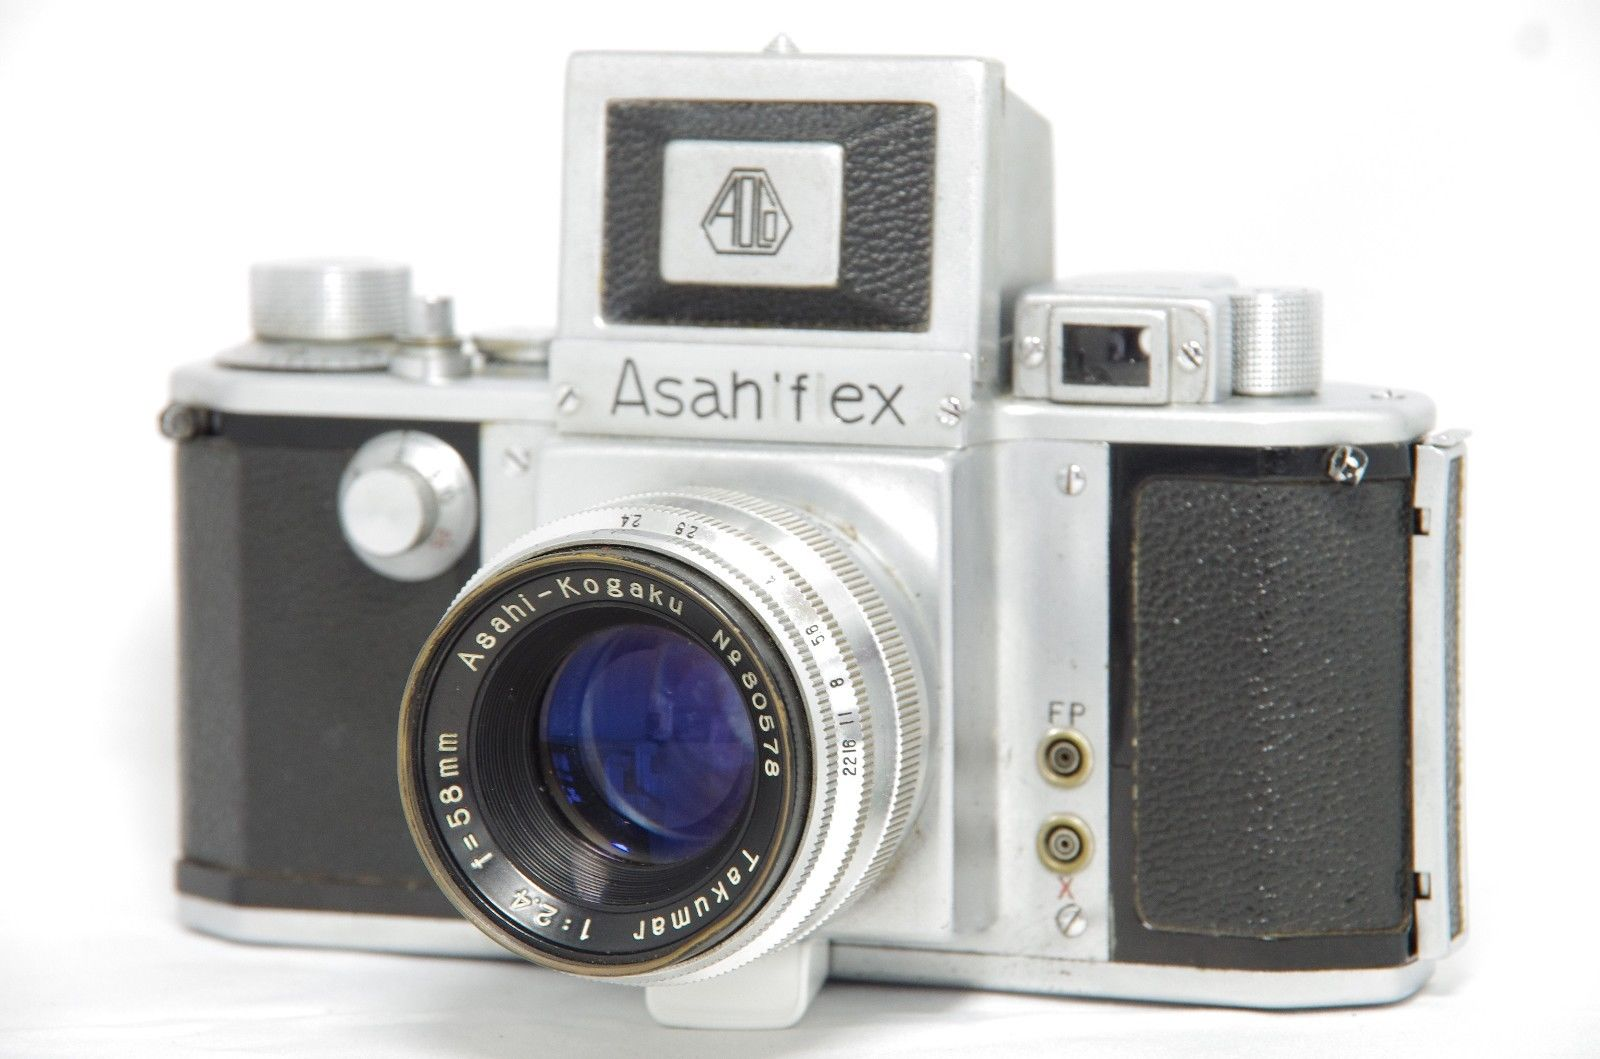 pentax-asahiflex-iia-35mm-slr-film-camera-with-58mm-f-2-4-lens-sn71804-1e06e1da3d8543f9a8831cd9065b8d29